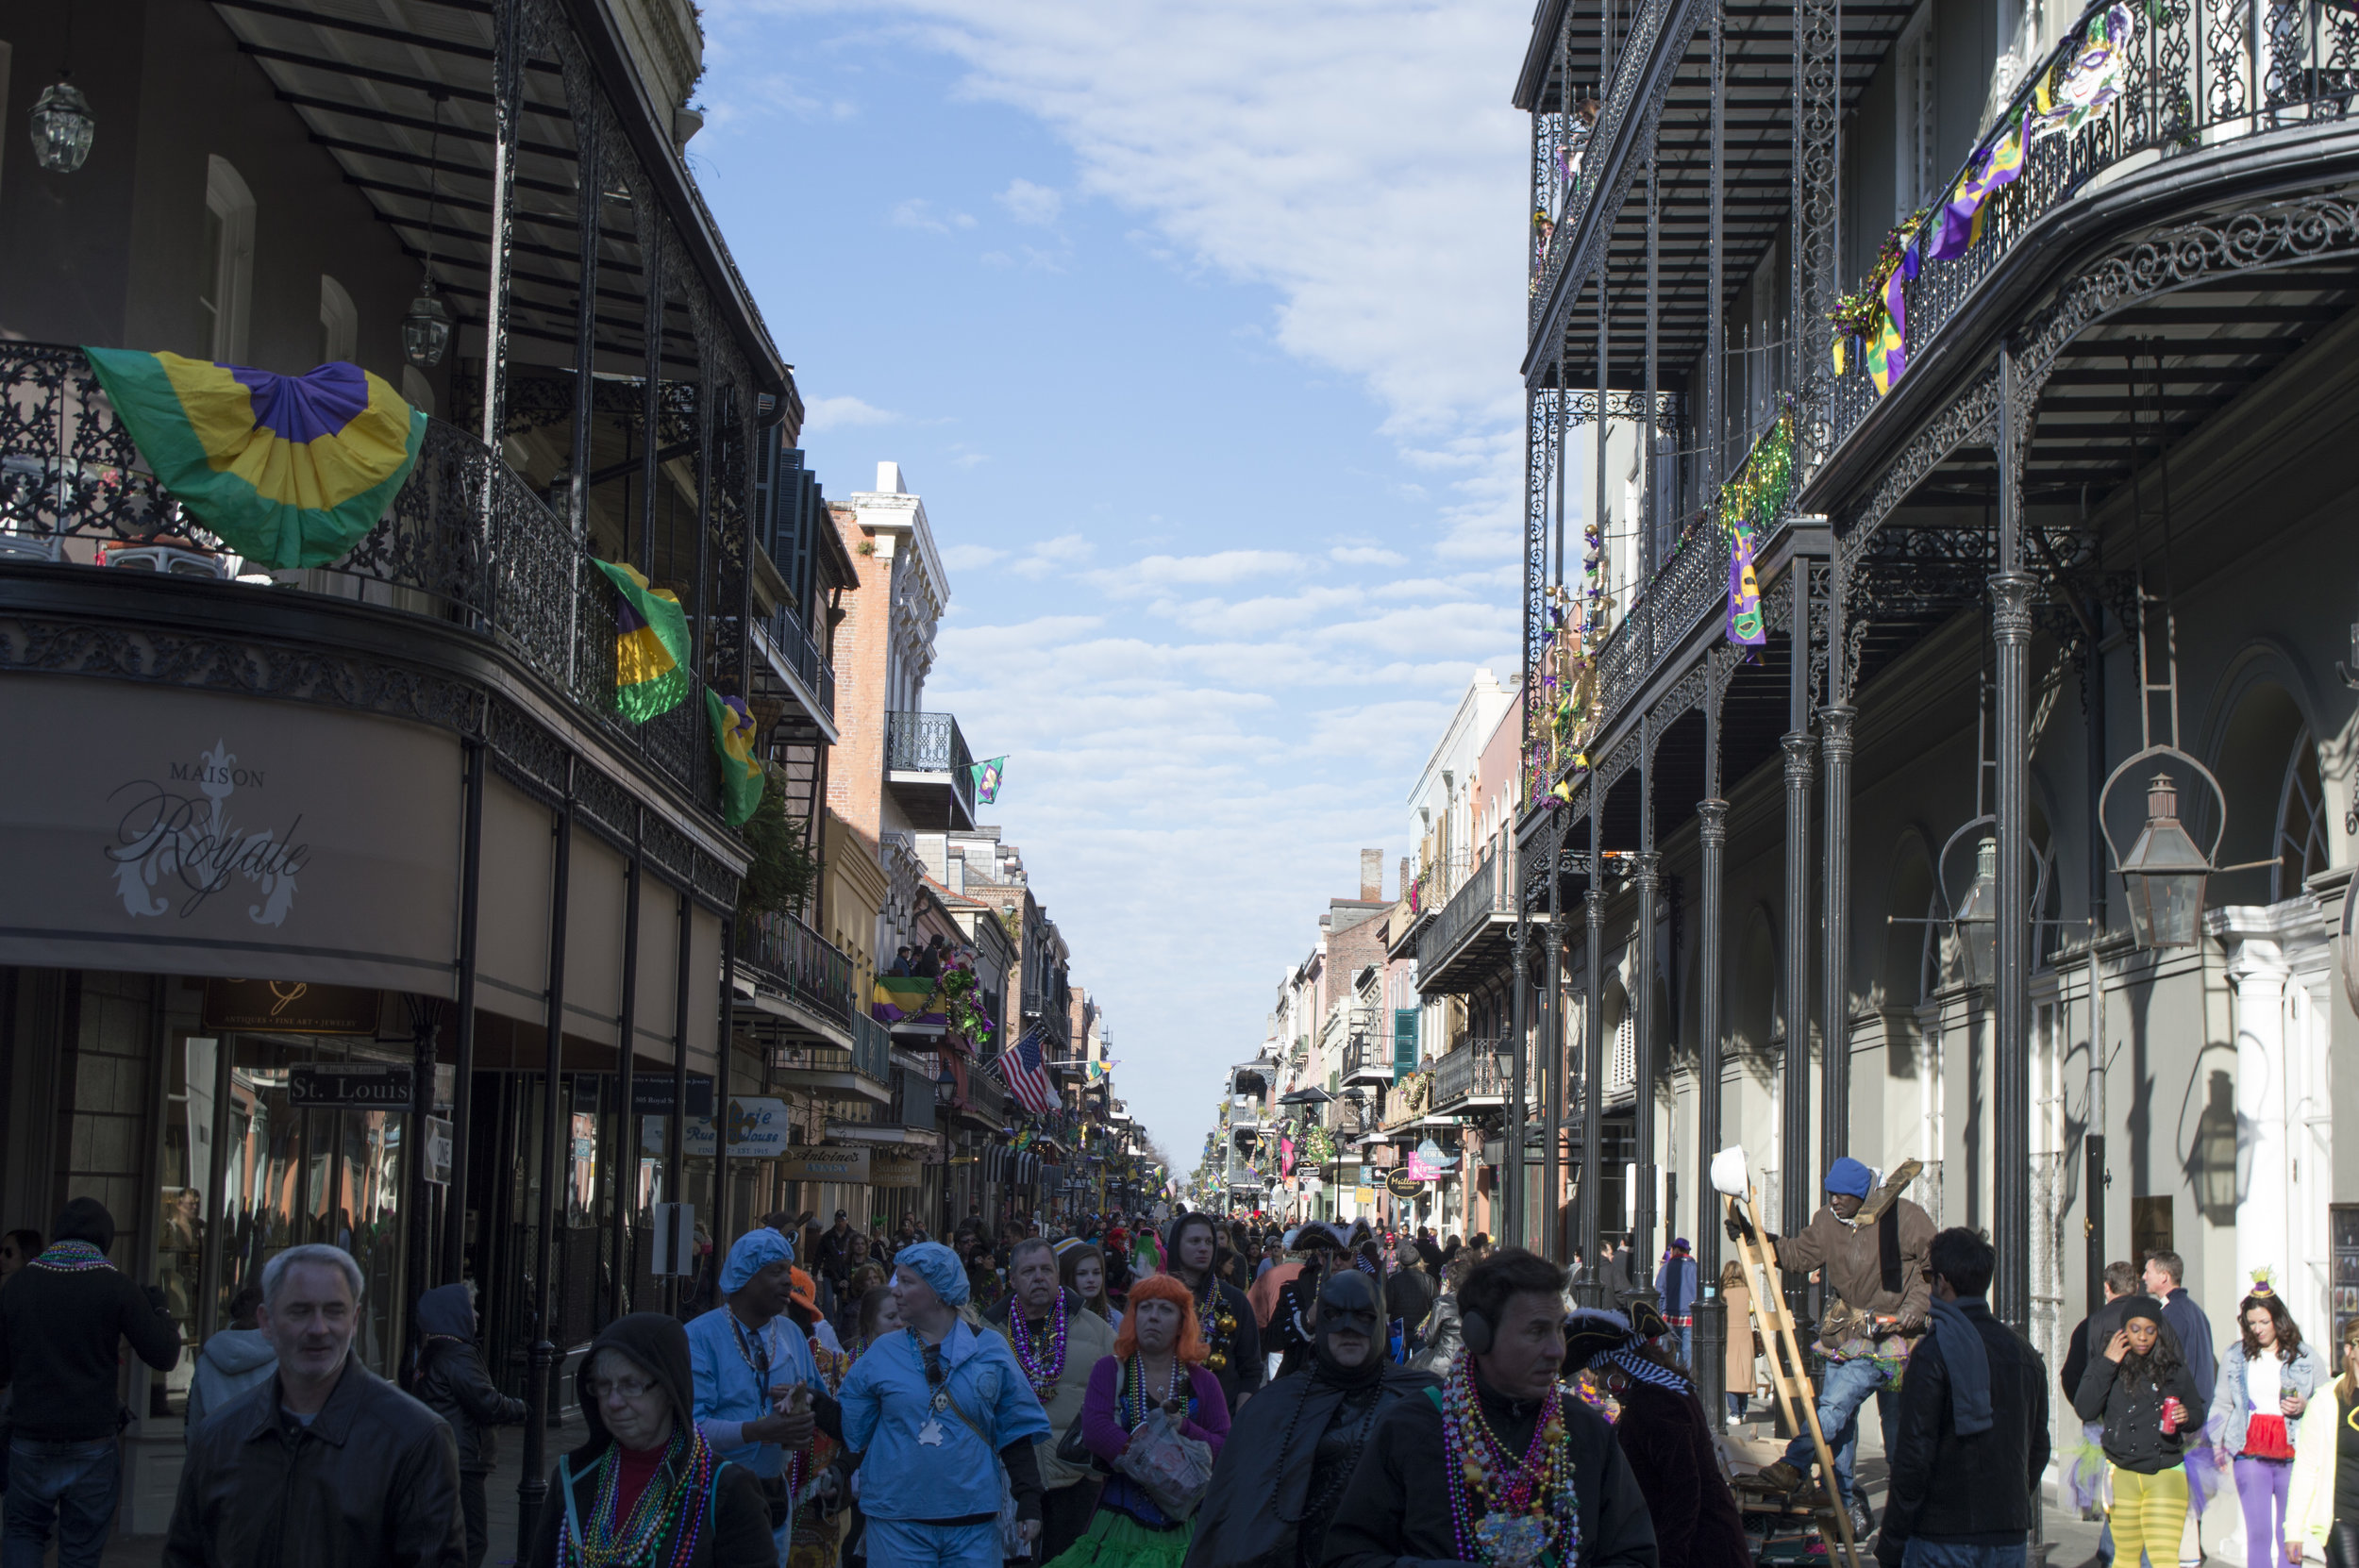 Mardi Gras Day in 2015, being just over 5 ft tall I took this photo on a whim. I held up my camera and hoped for the best.